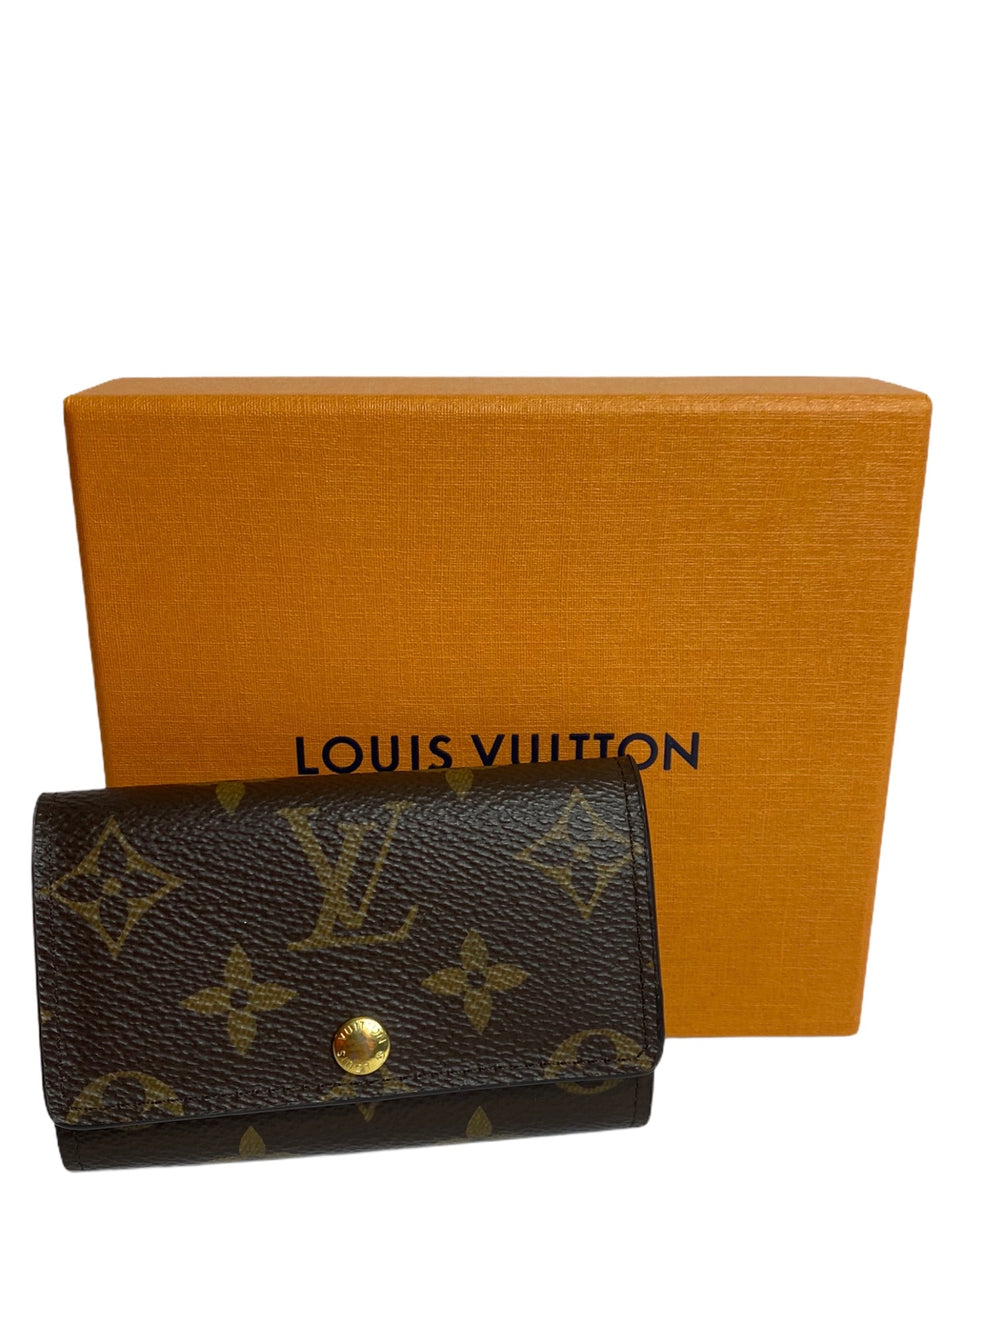 Louis Vuitton Monogram key Holder - As Seen on Instagram 18/11/20